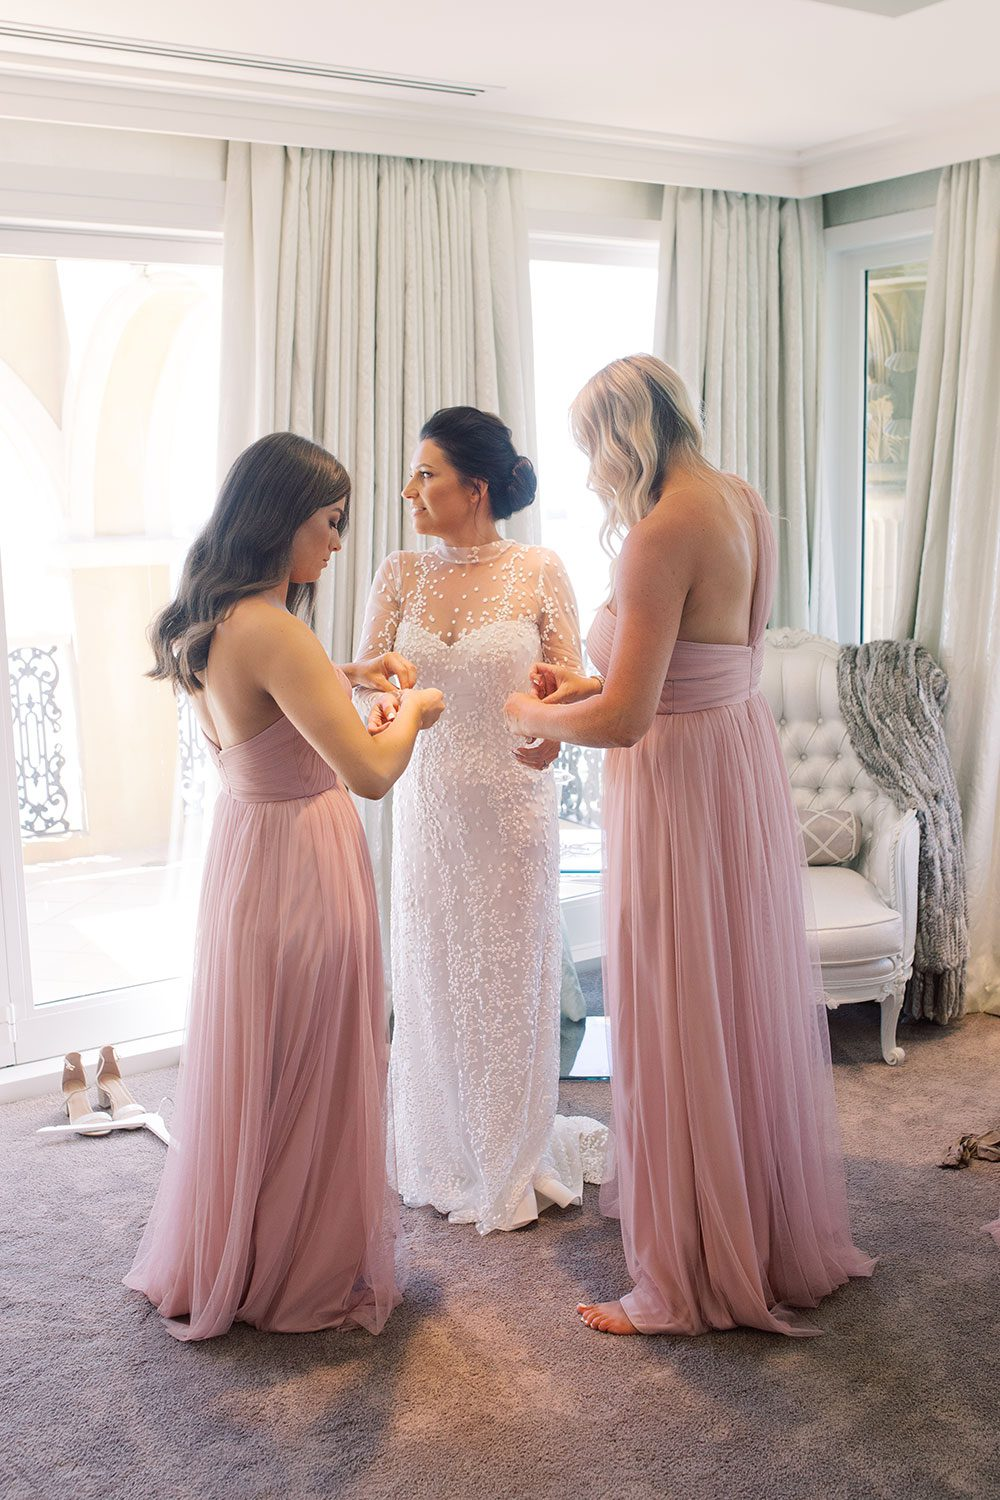 Bride wearing bespoke gown by Auckland wedding dress designer Vinka Design, with a high neckline and delicate spotted embroidery - bride and bridesmaids getting ready